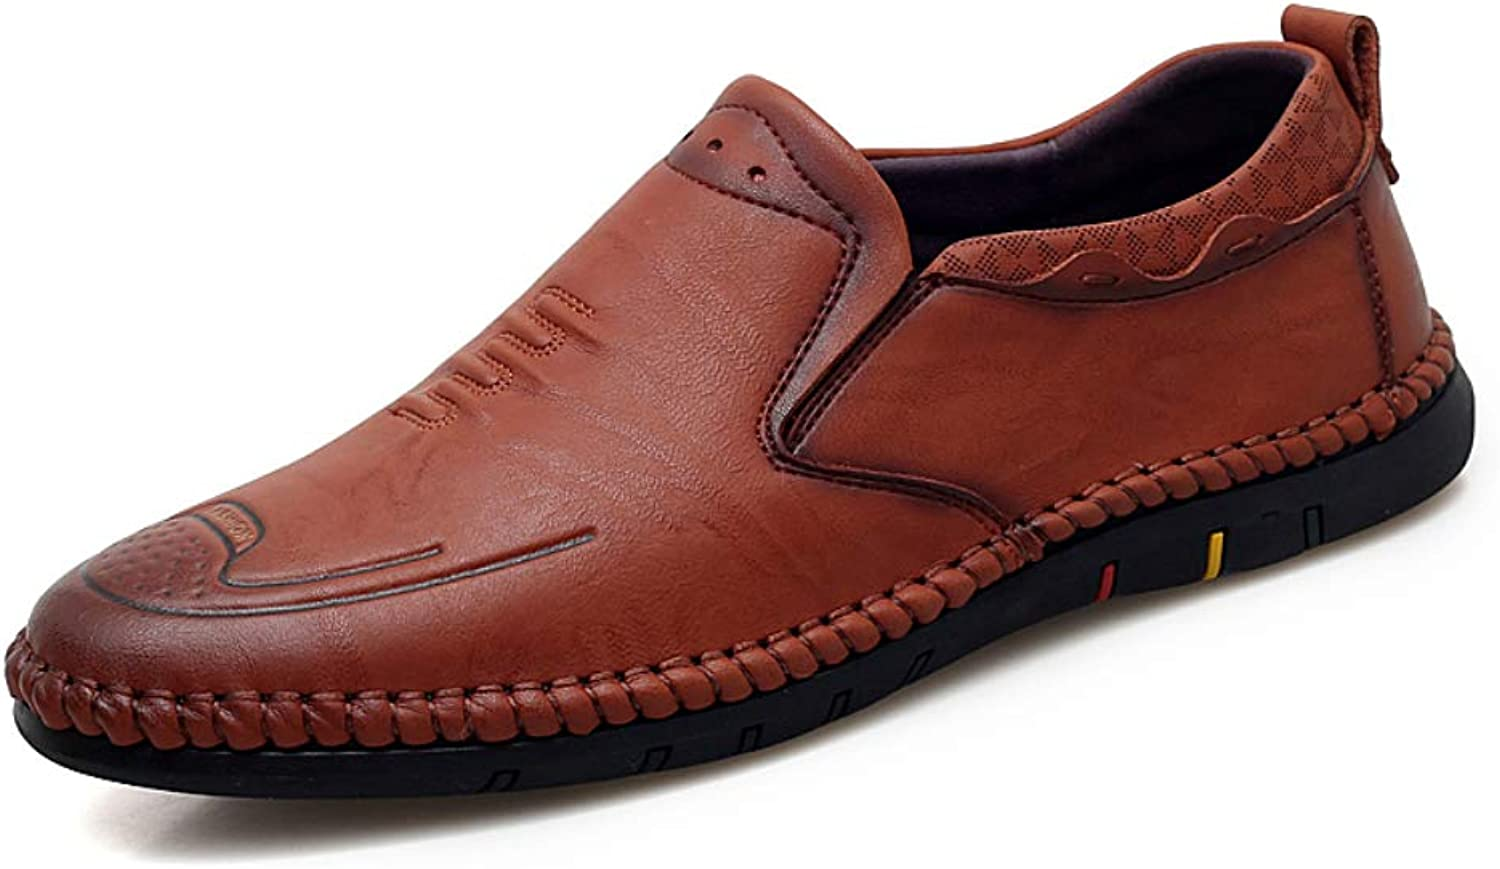 Men's Leather Casual Driving shoes Non-Slip Oxford shoes